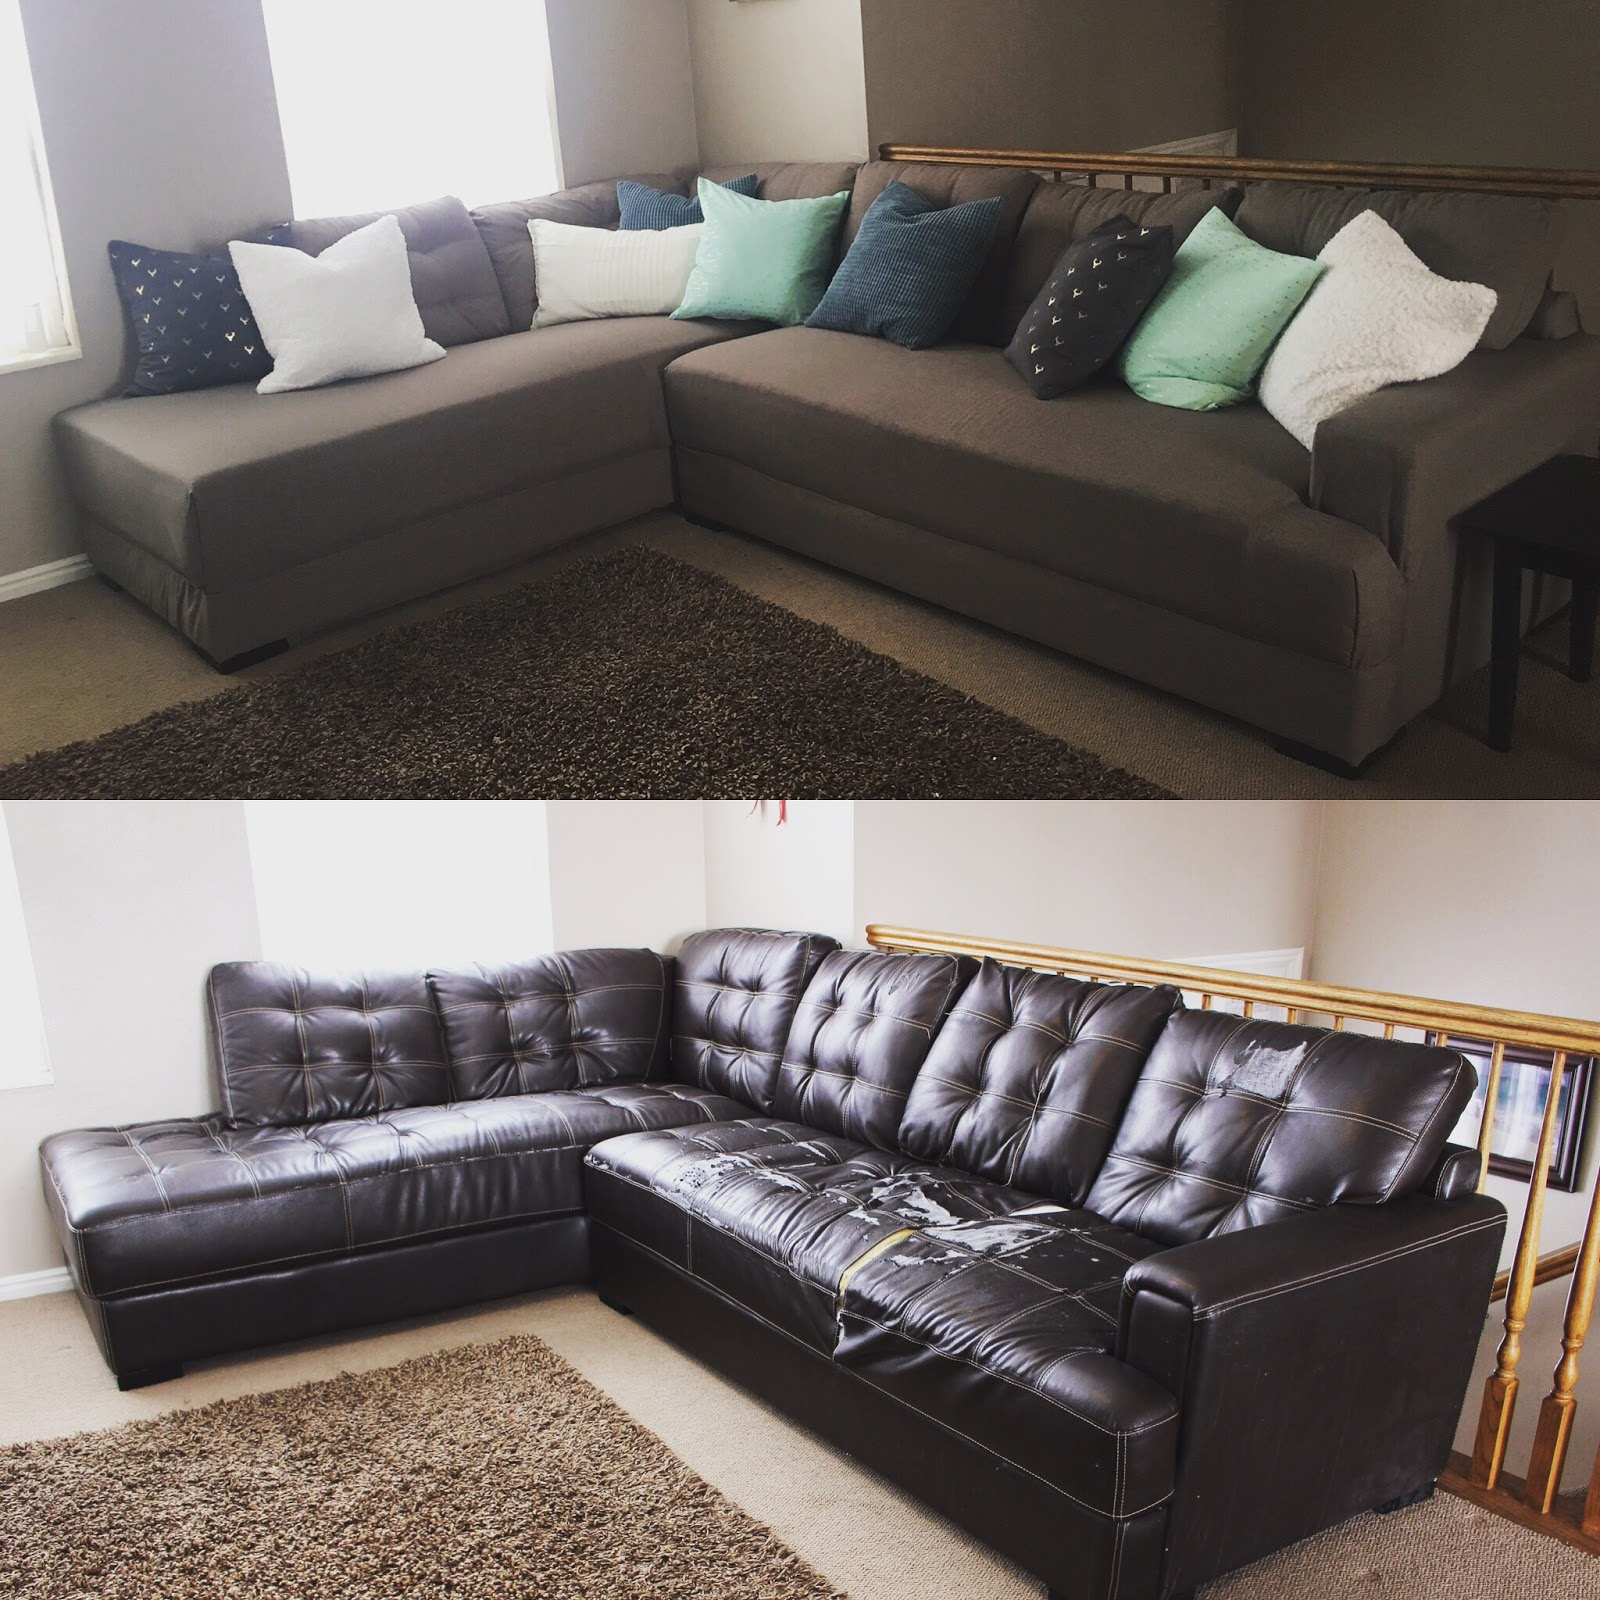 How To Reupholster A Sectional Sofa How To Reupholster A